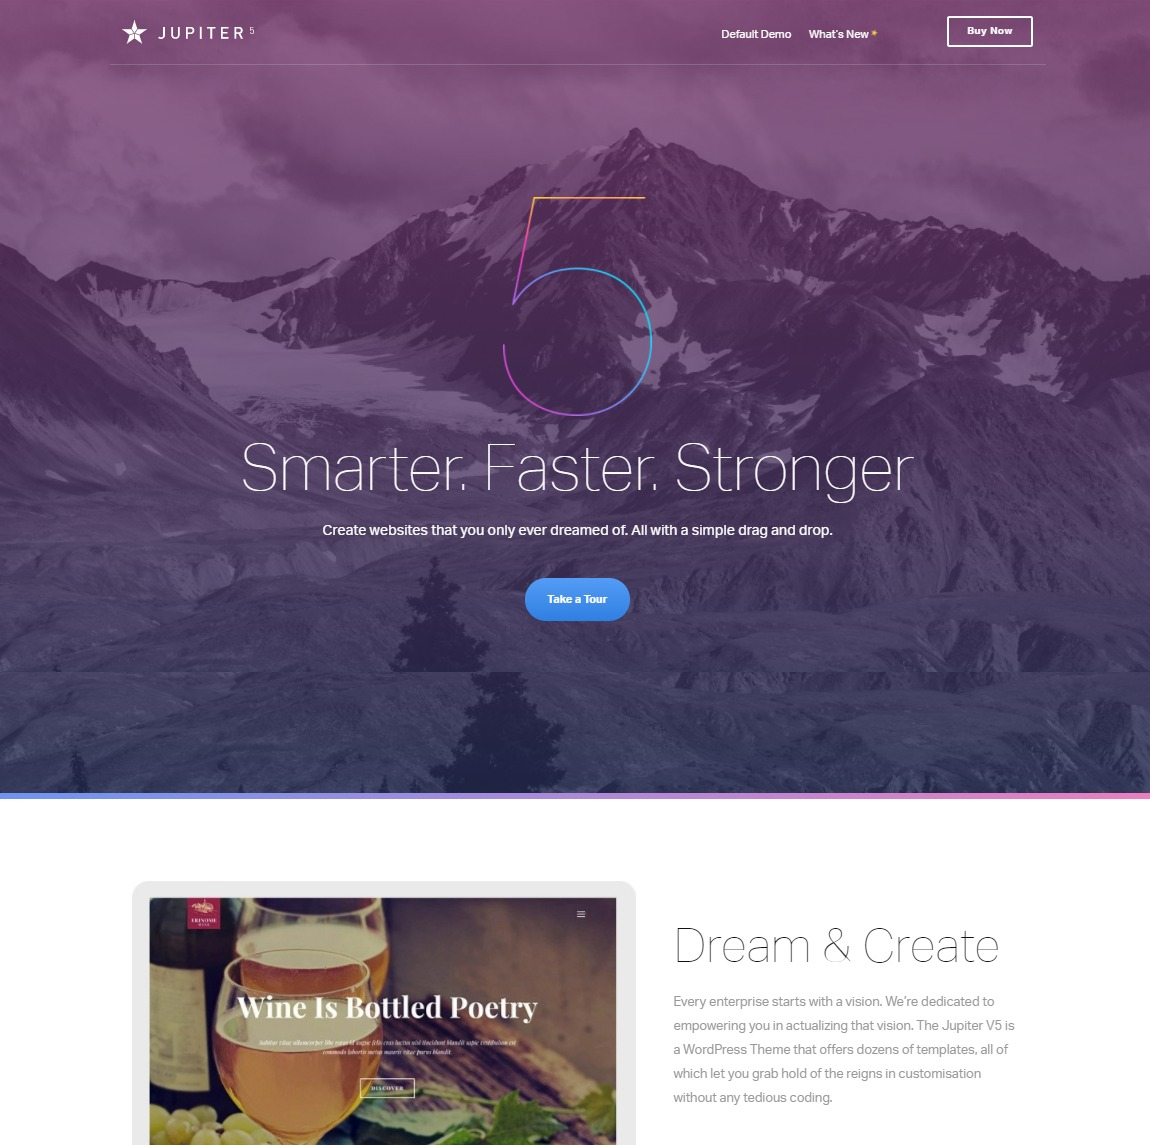 jupiter-customizable-wp-theme